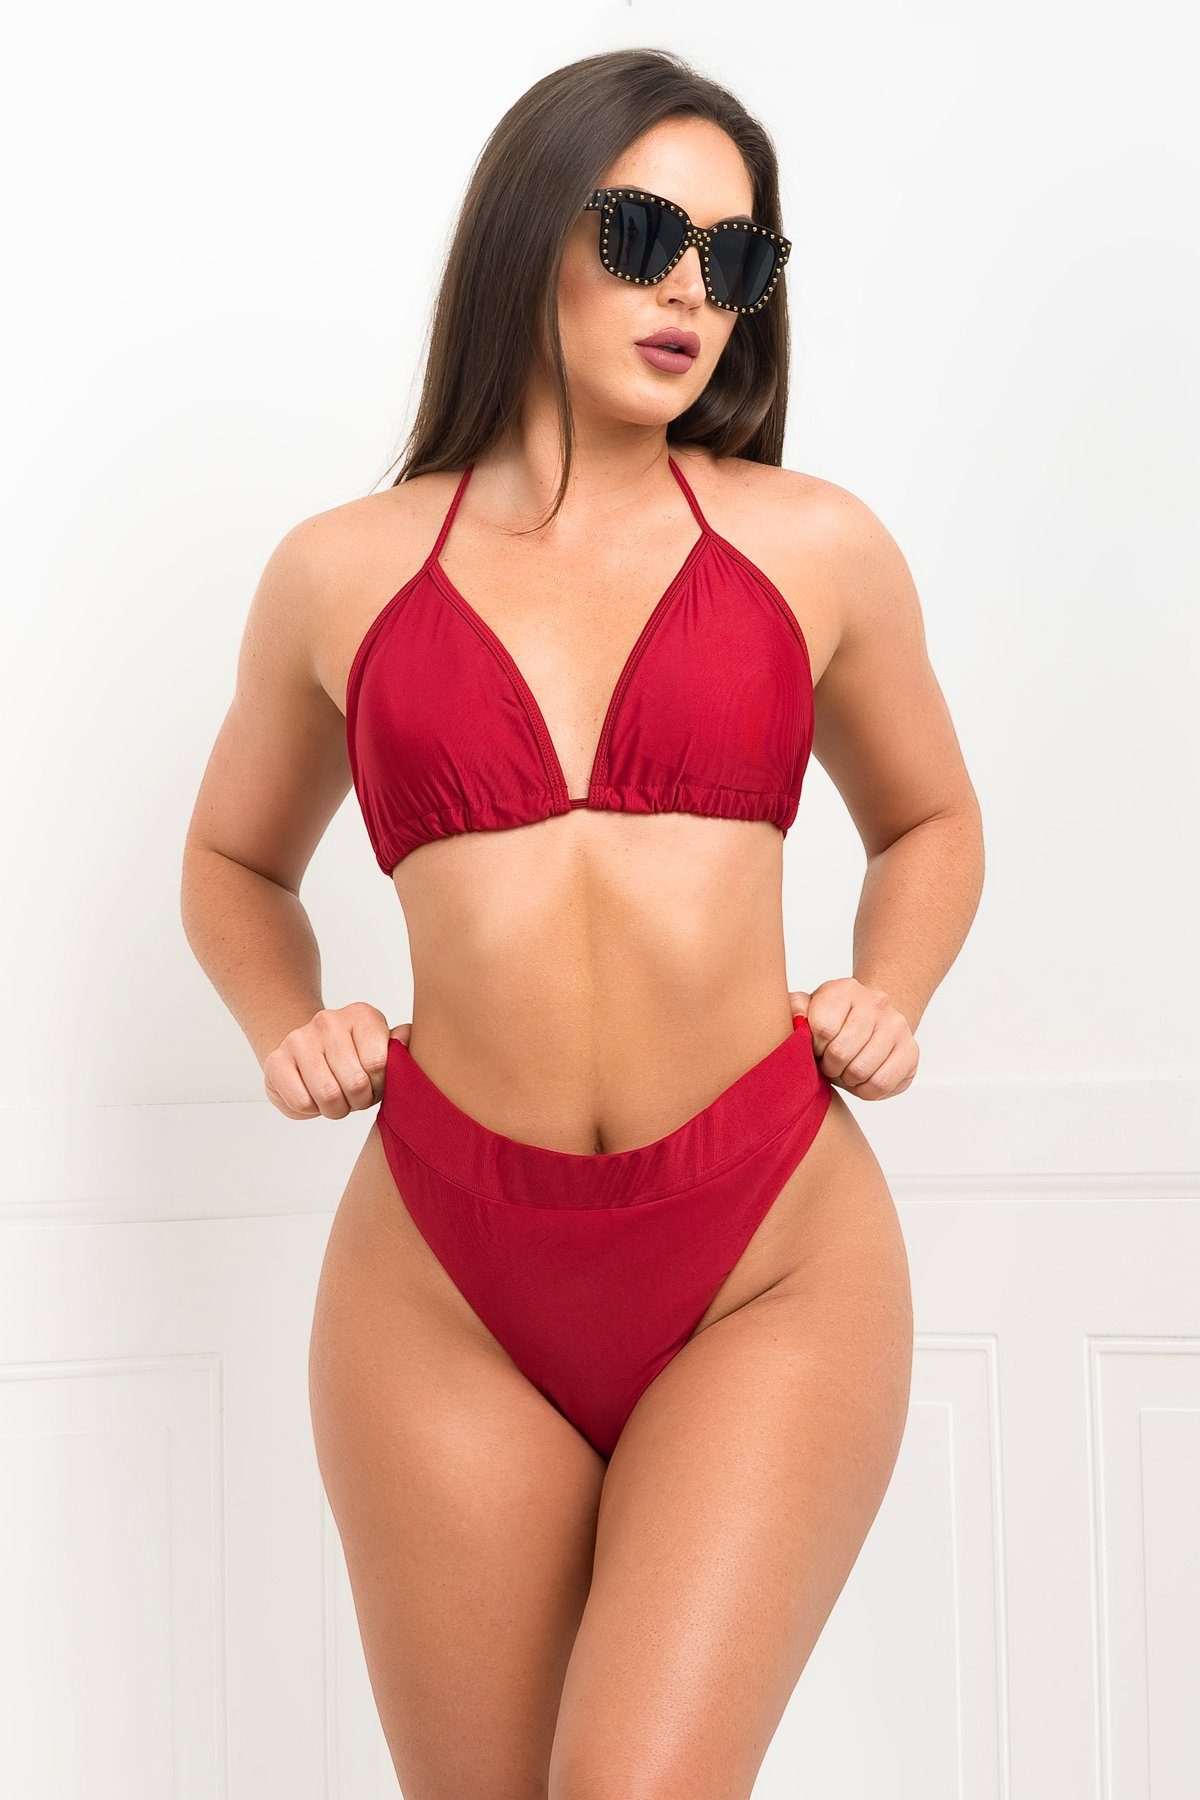 Sandy Cliffs 3 Piece Swimsuit - Burgundy